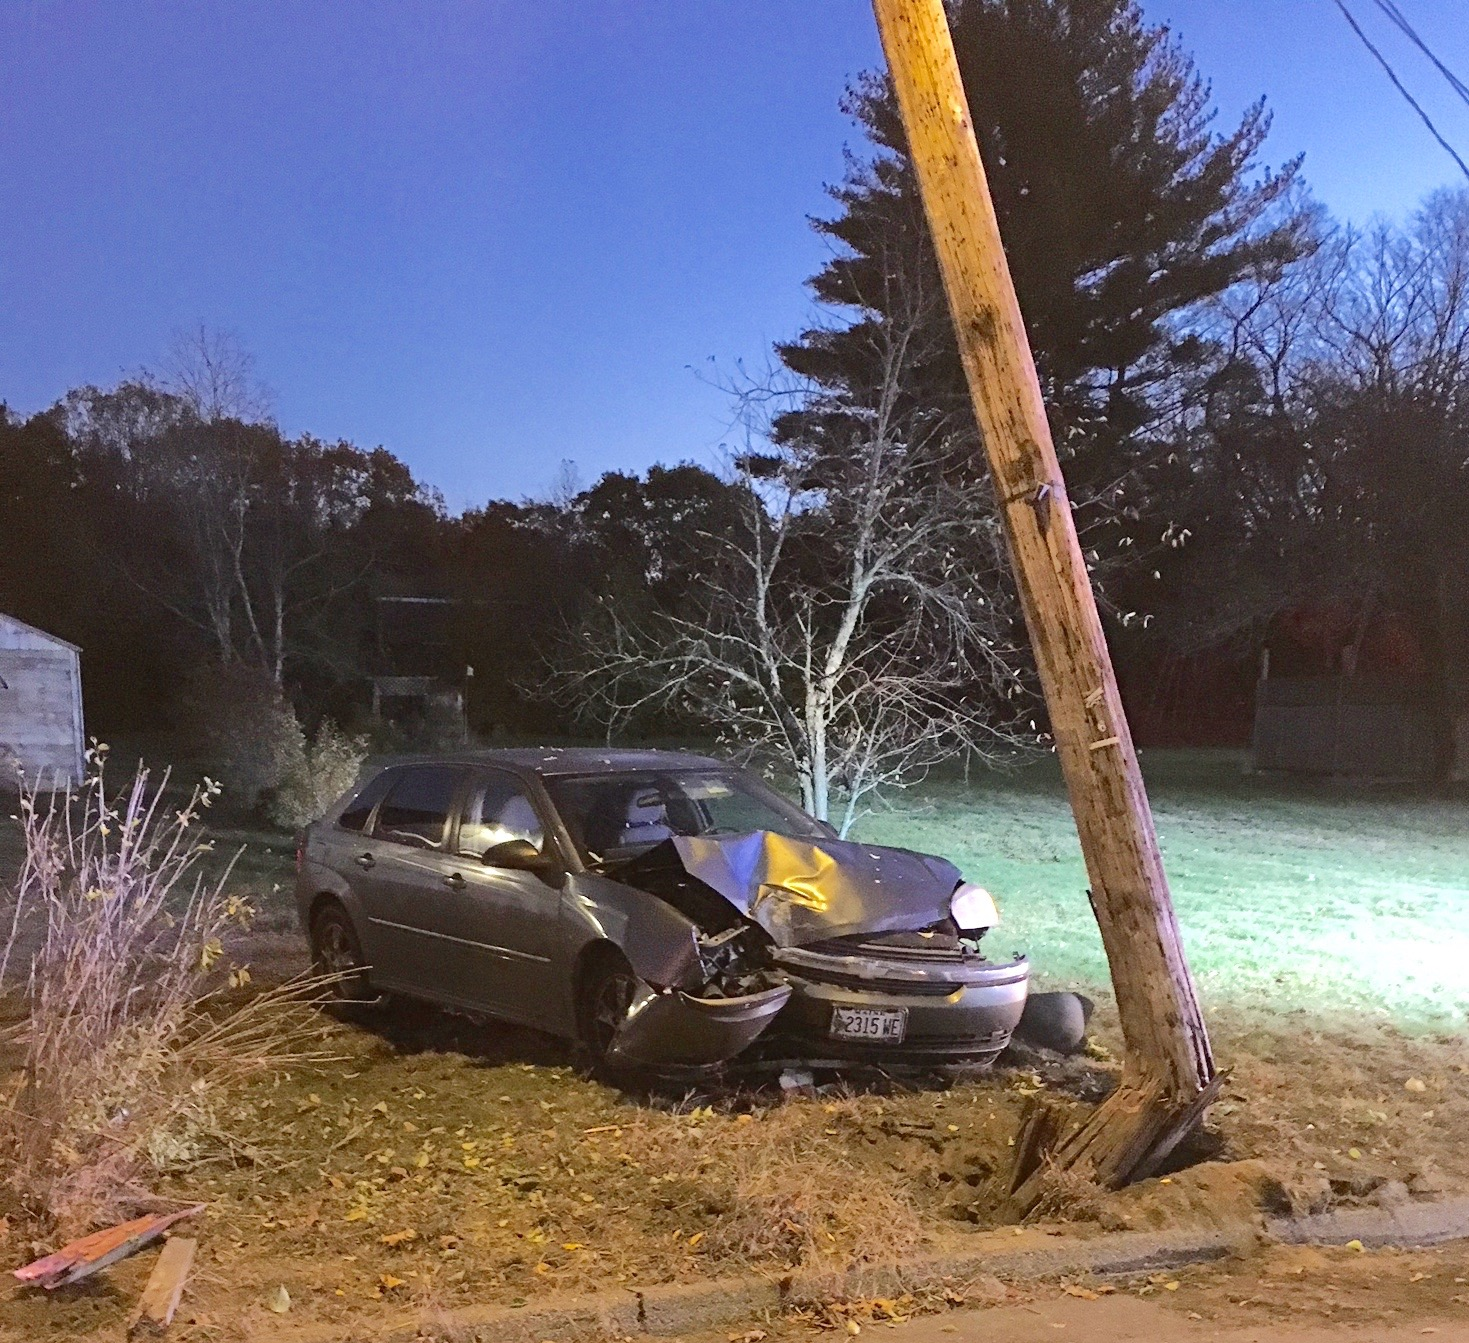 A driver fell asleep at the wheel and crashed into a utility pole on West Road near Pole Line Lane in Waterboro at about 6:15 a.m. Tuesday. COURTESY PHOTO/York County Sheriff's Office